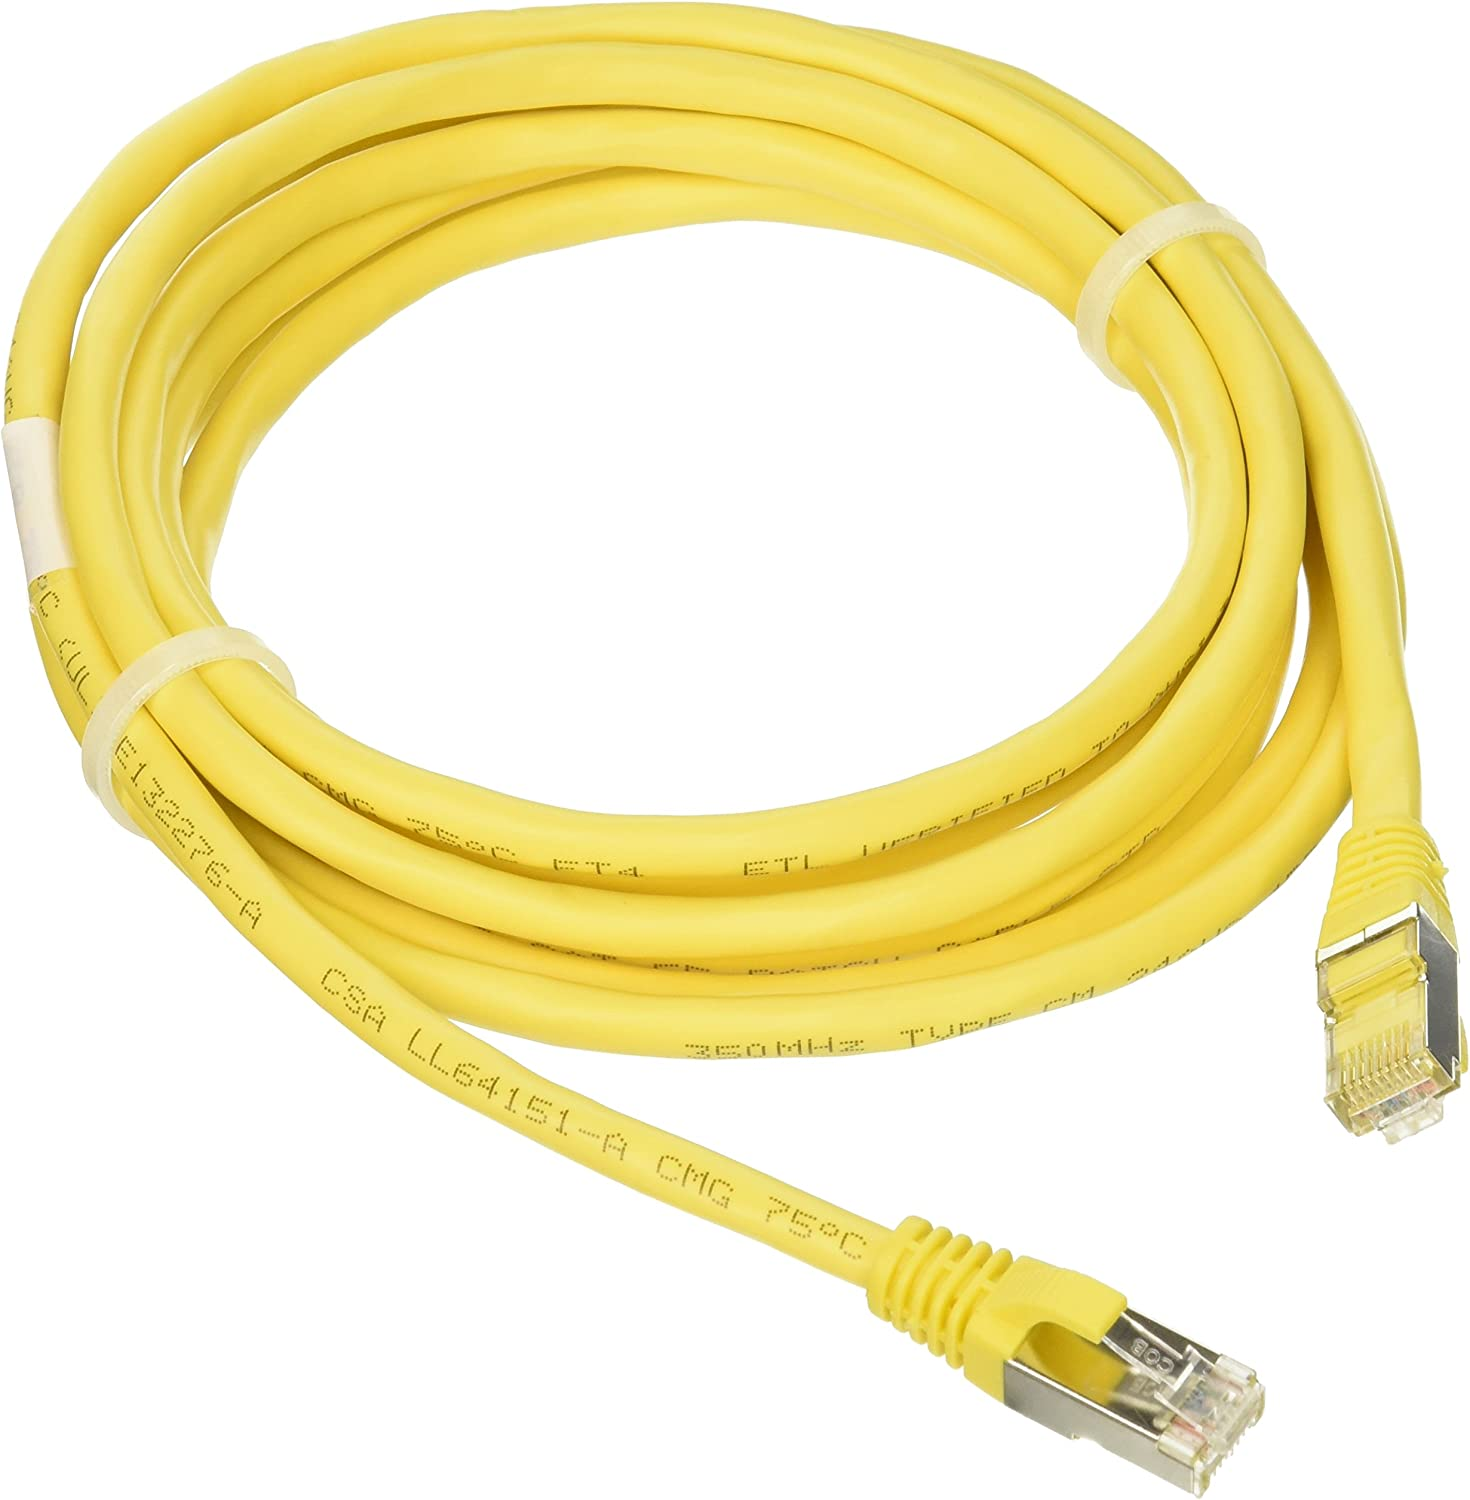 10 Feet, 3.04 Meters Snagless Shielded Ethernet Network Patch Cable Yellow C2G 27258 Cat5e Cable